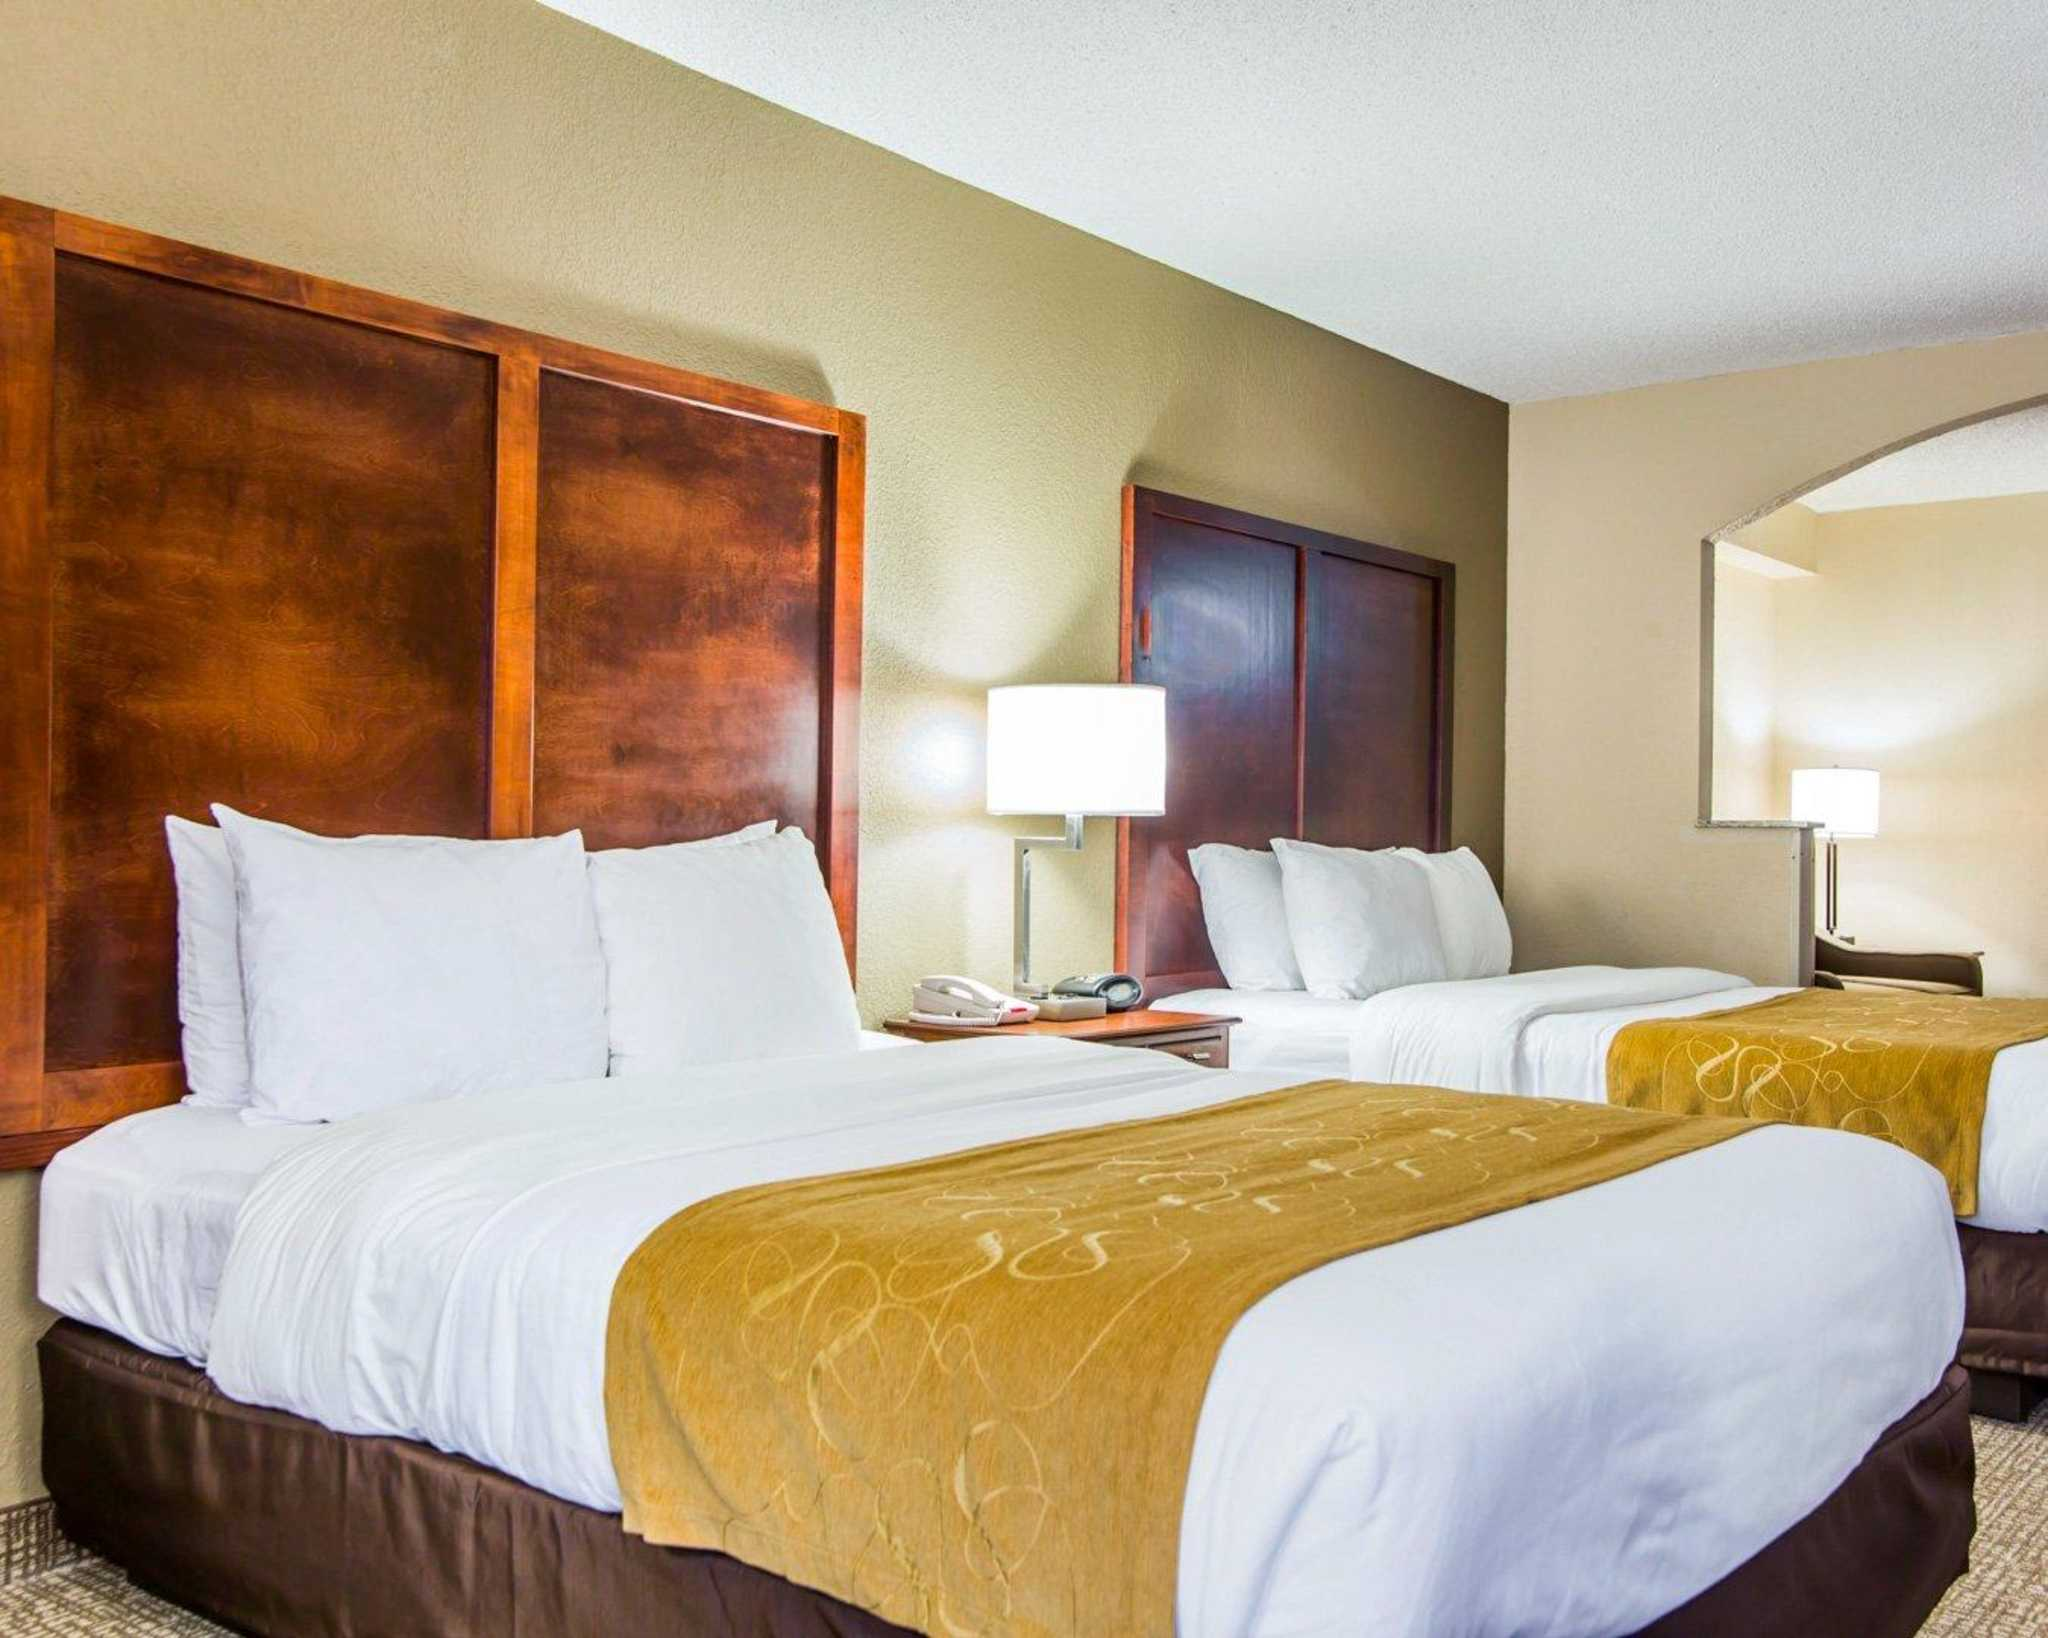 Comfort Suites Coupons near me in Sumter | 8coupons